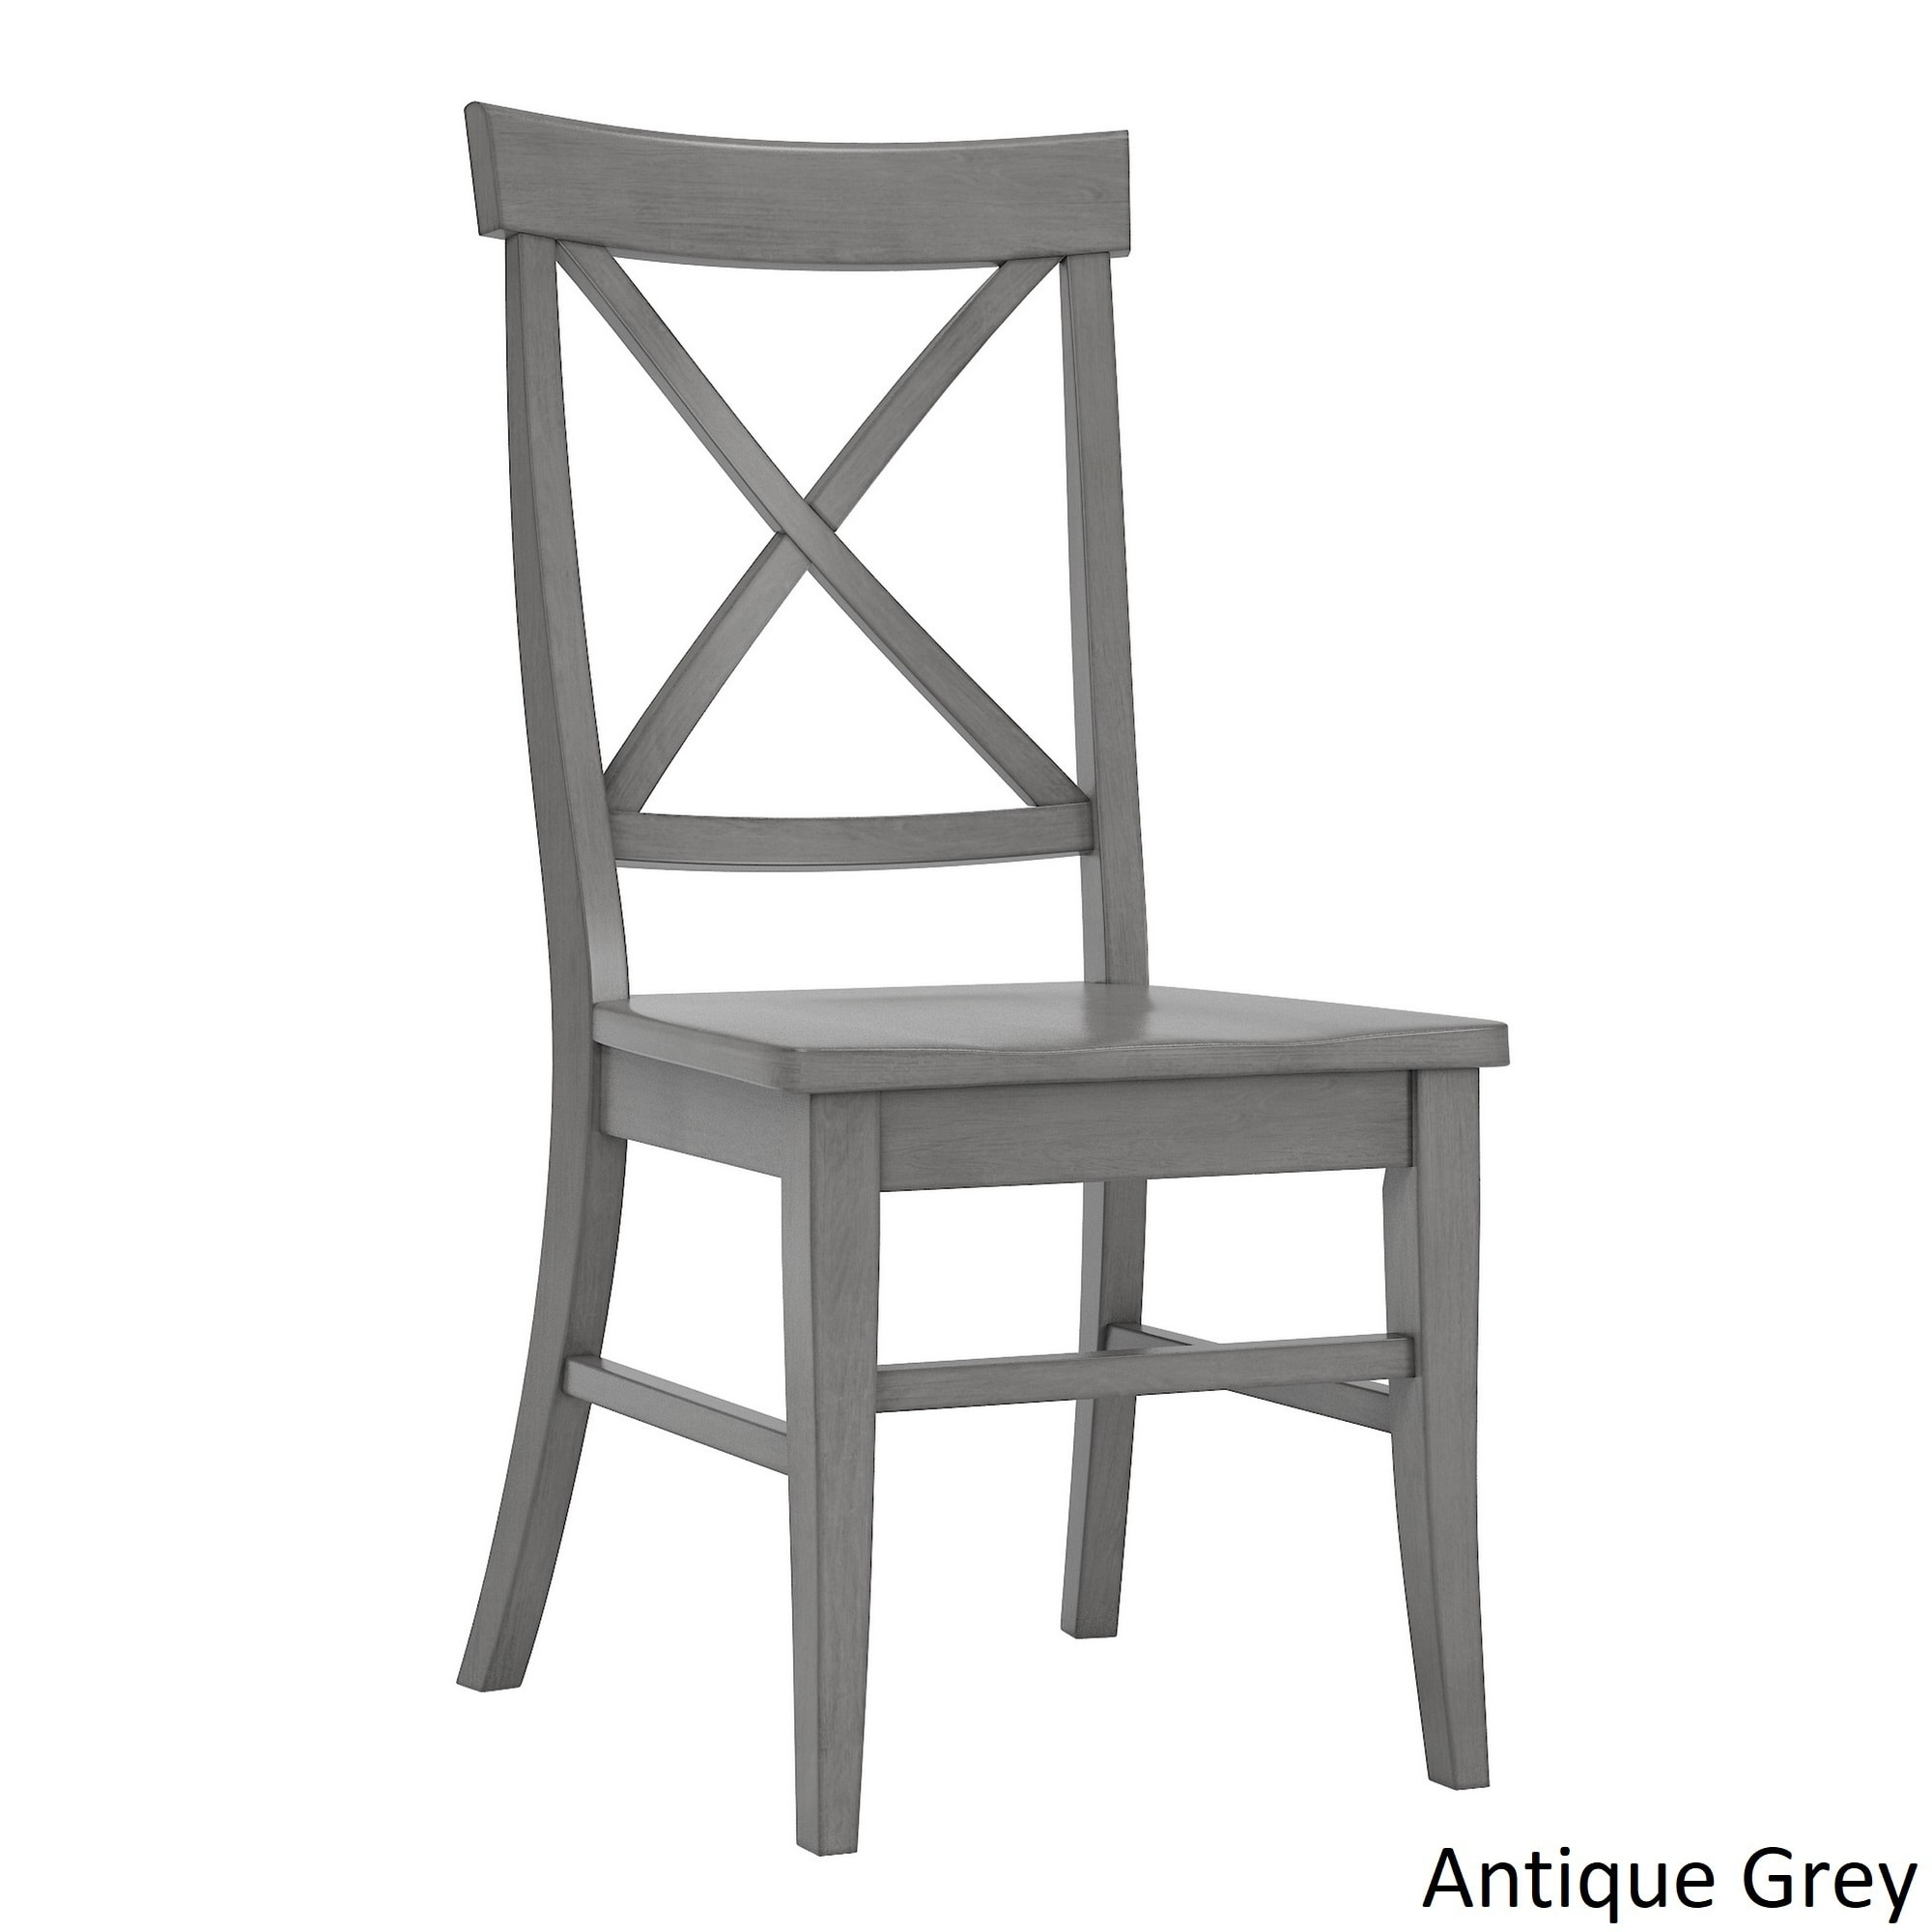 Delightful Eleanor X Back Wood Dining Chair (Set Of 2) By INSPIRE Q Classic   Free  Shipping Today   Overstock   26222667